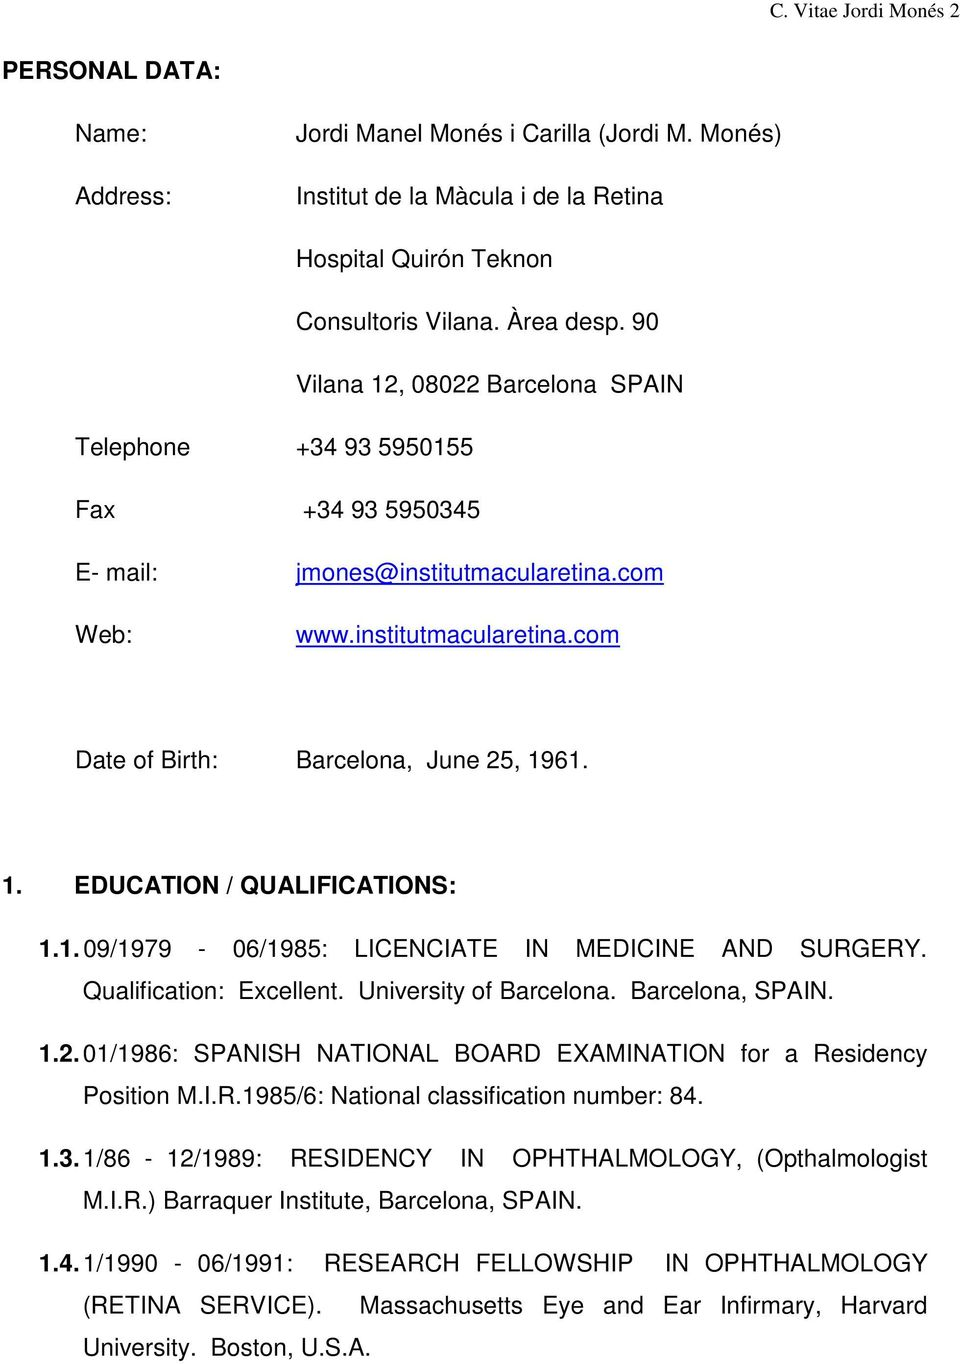 1. 09/1979-06/1985: LICENCIATE IN MEDICINE AND SURGERY. Qualification: Excellent. University of Barcelona. Barcelona, SPAIN. 1.2.